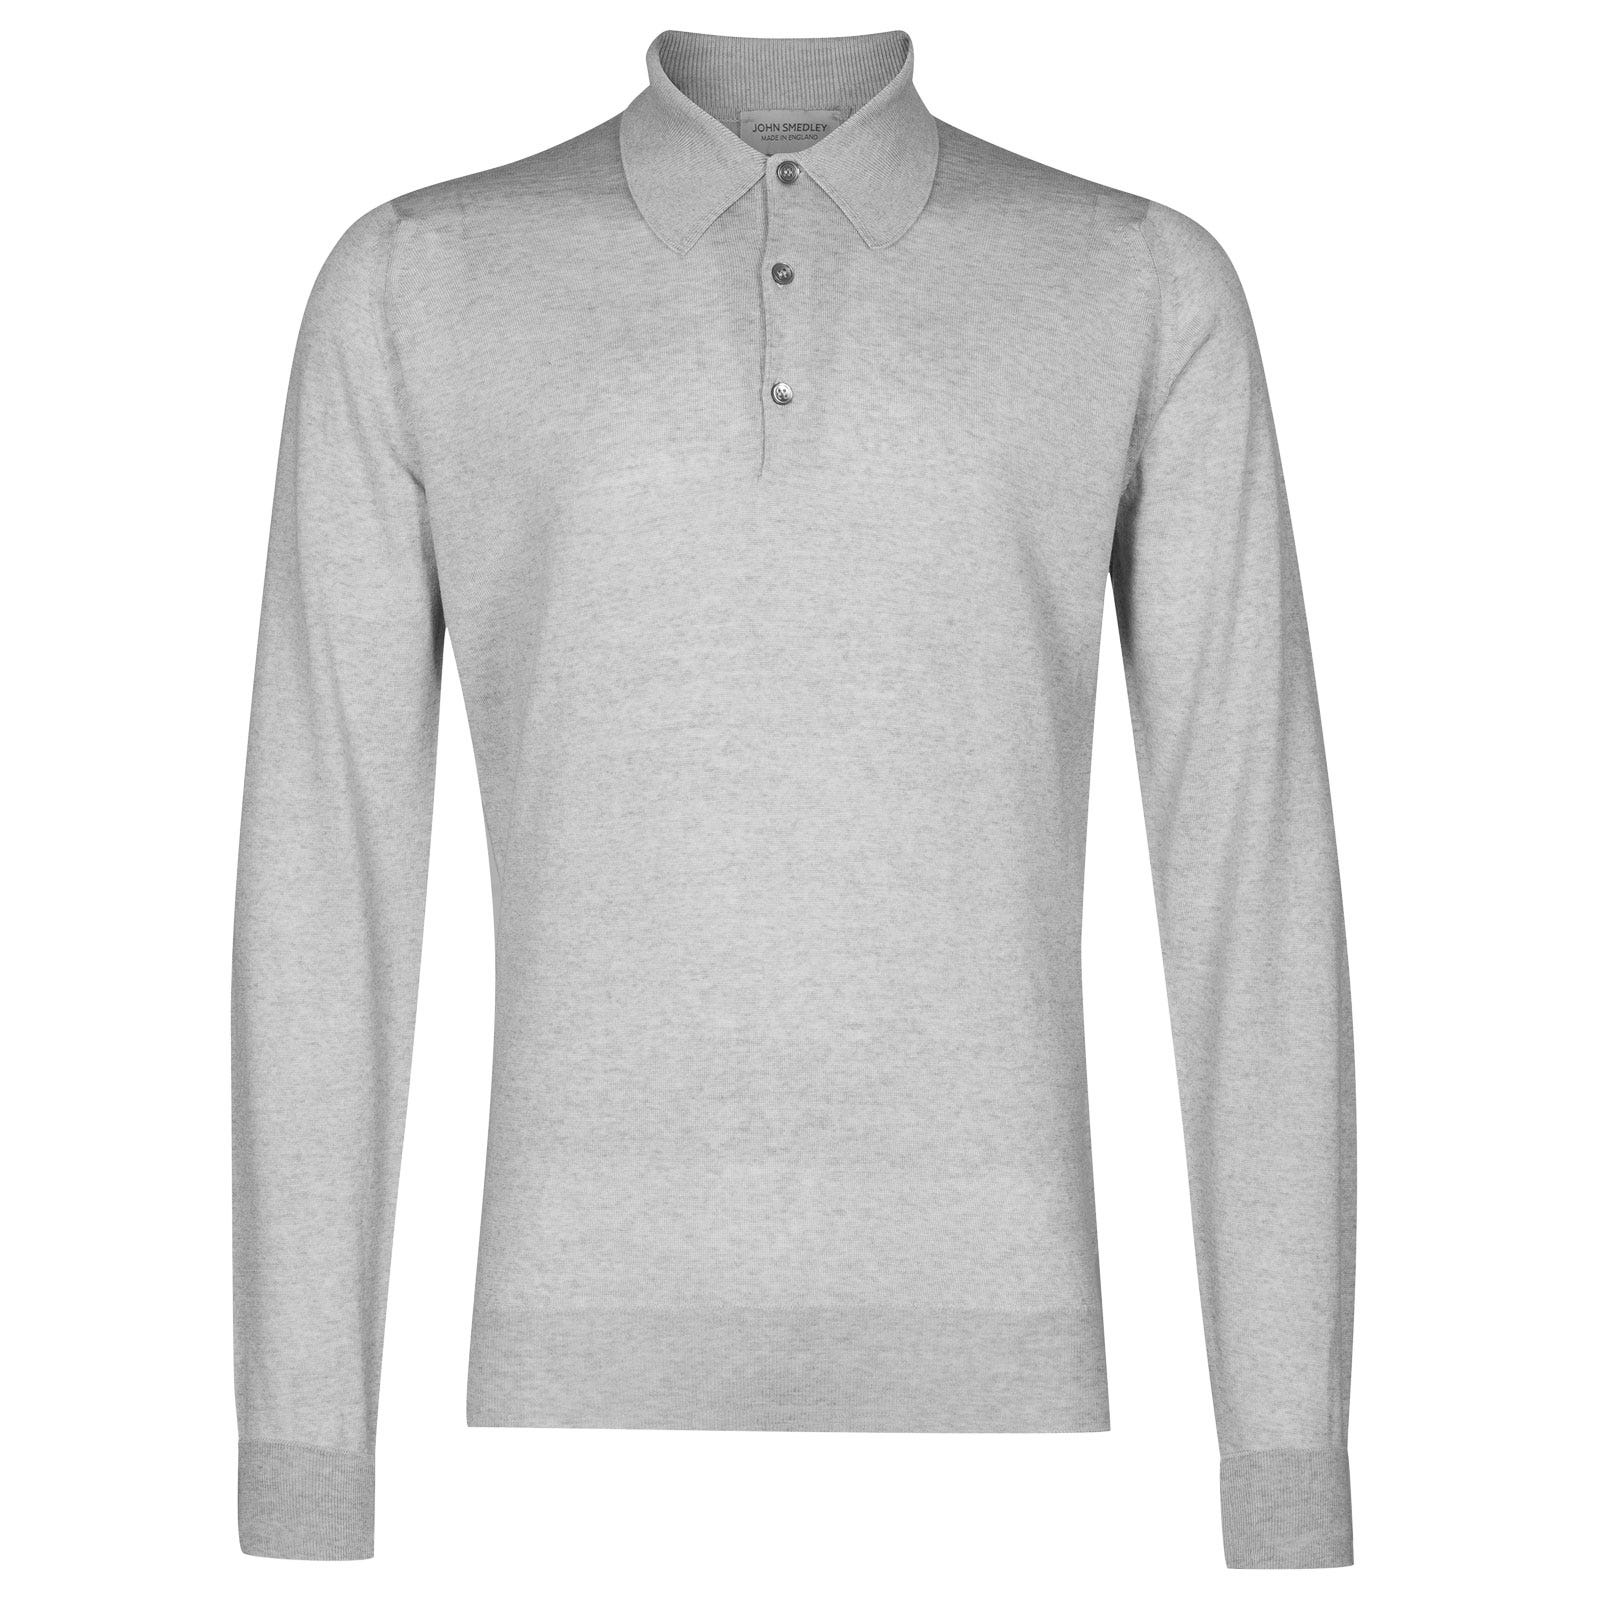 John Smedley dorset Merino Wool Shirt in Bardot Grey-XL